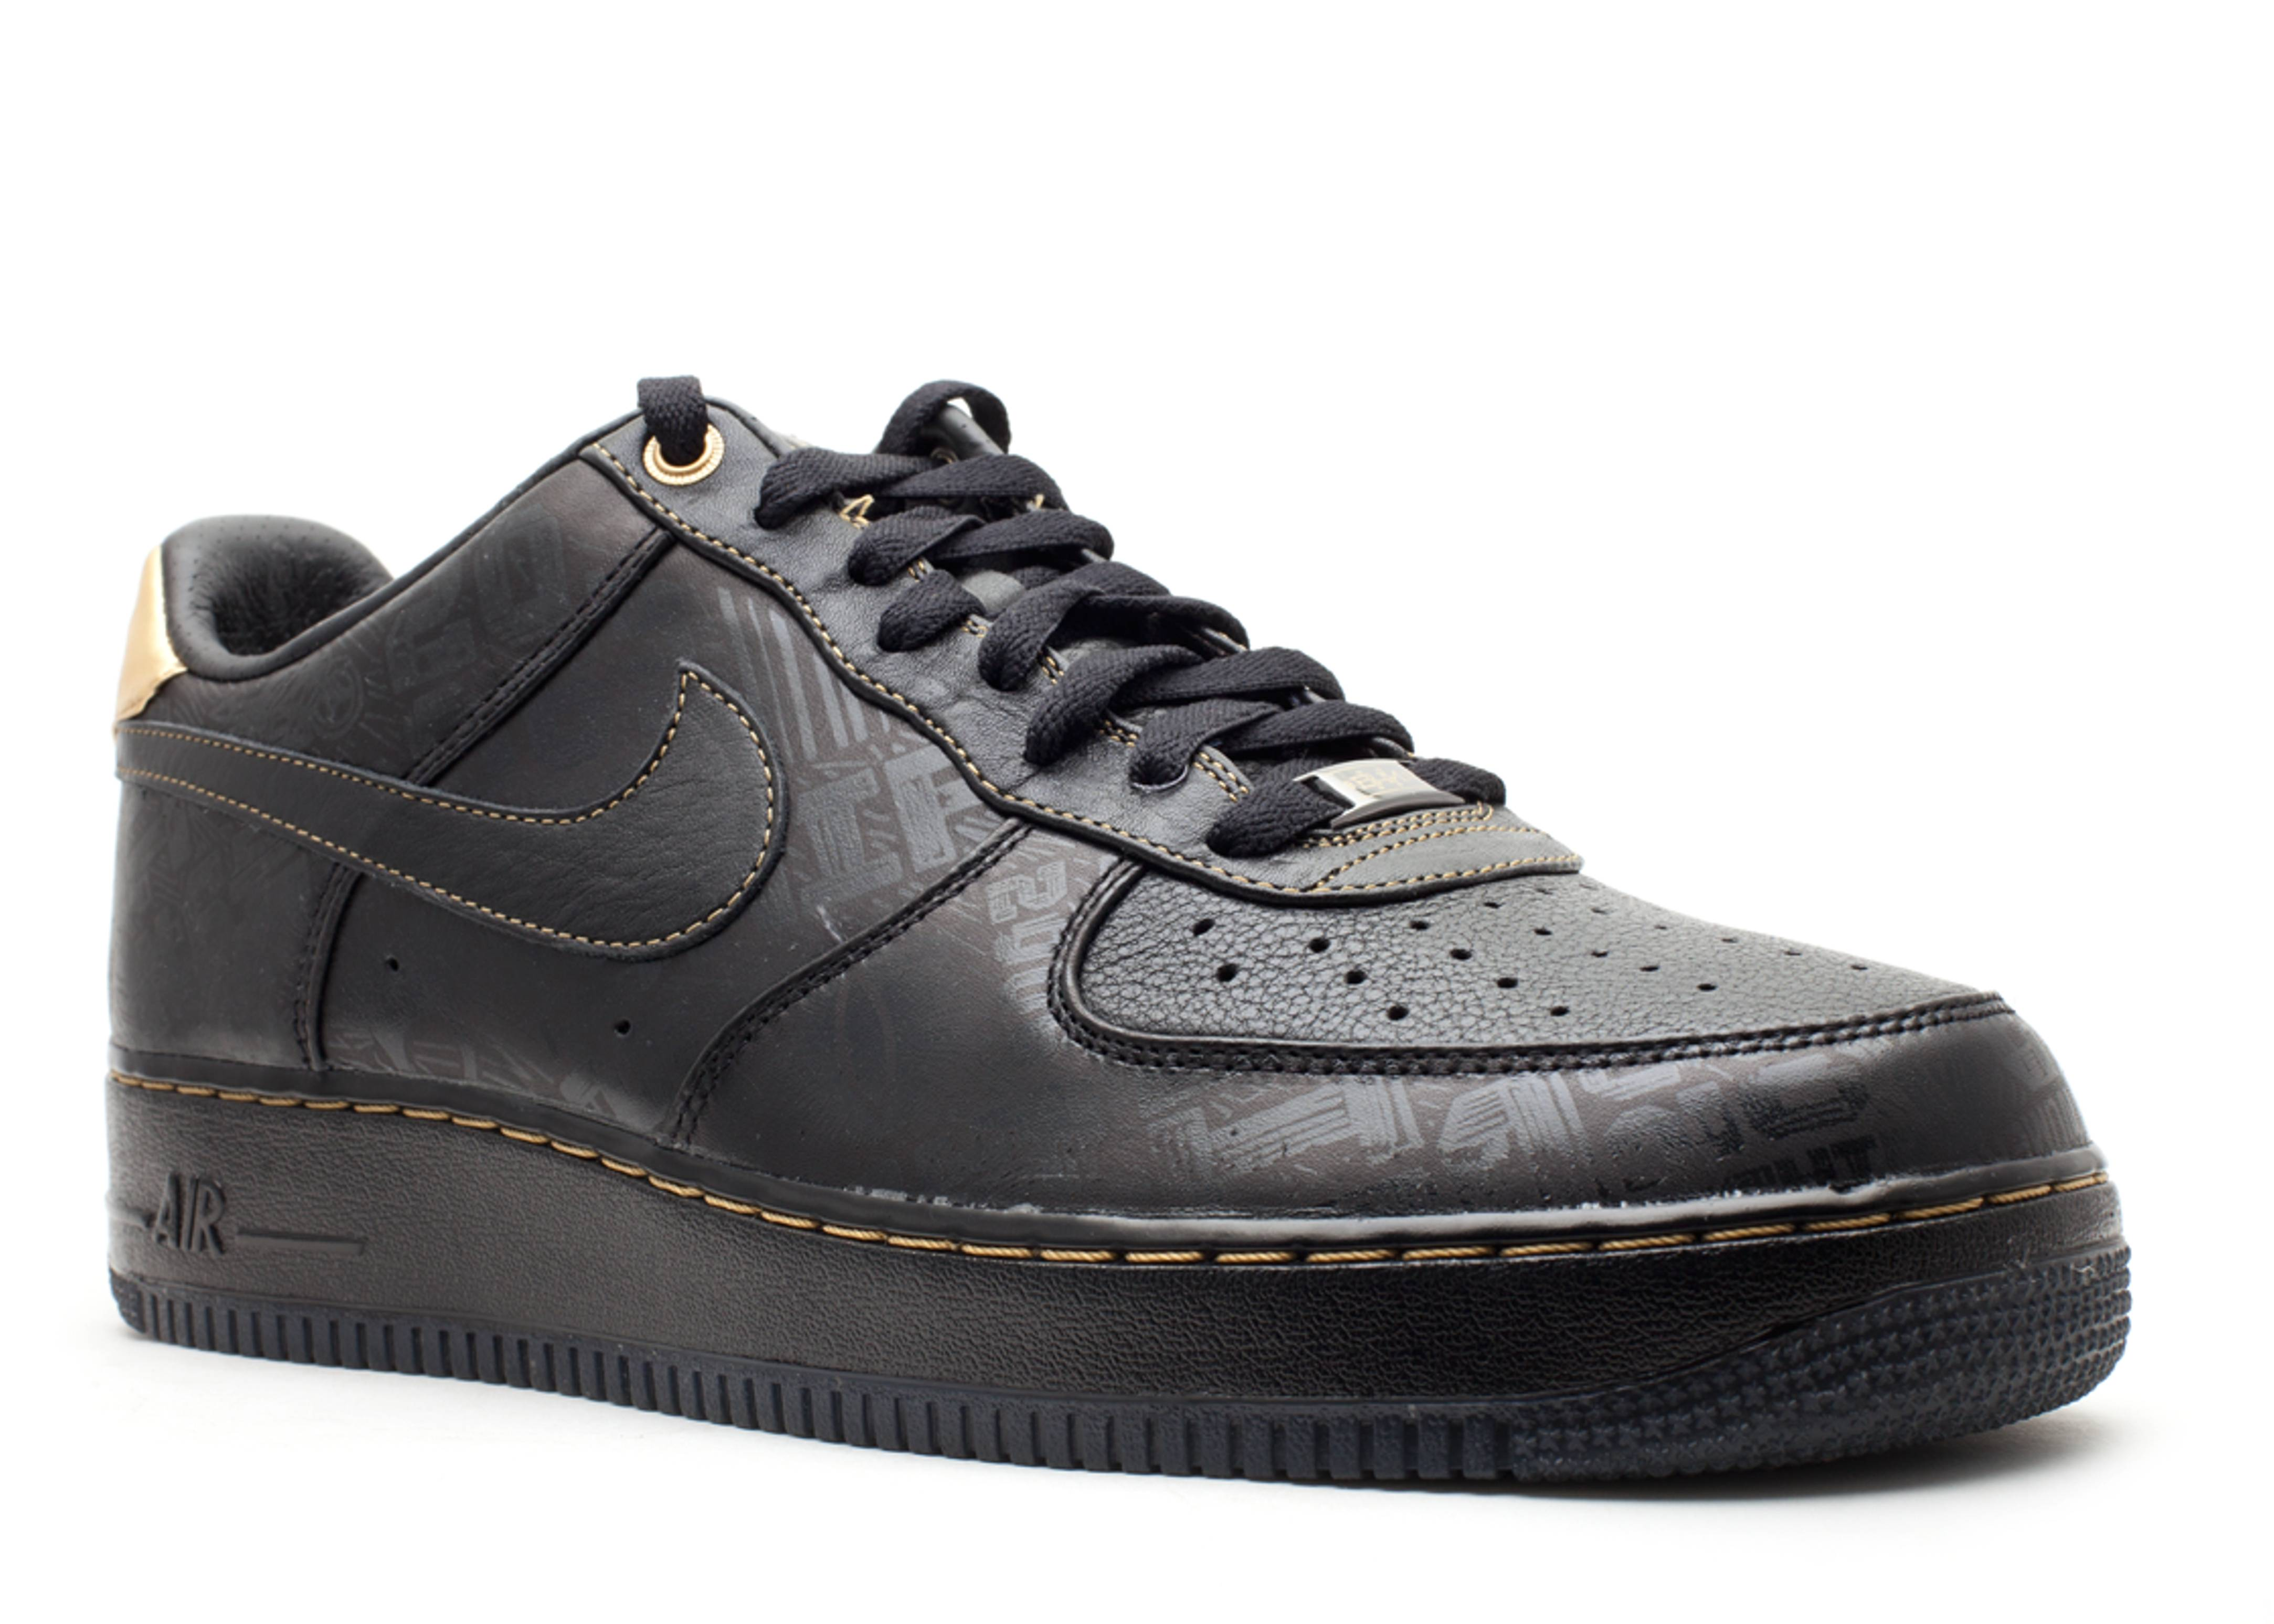 Air Force 1 Low PRM BHM